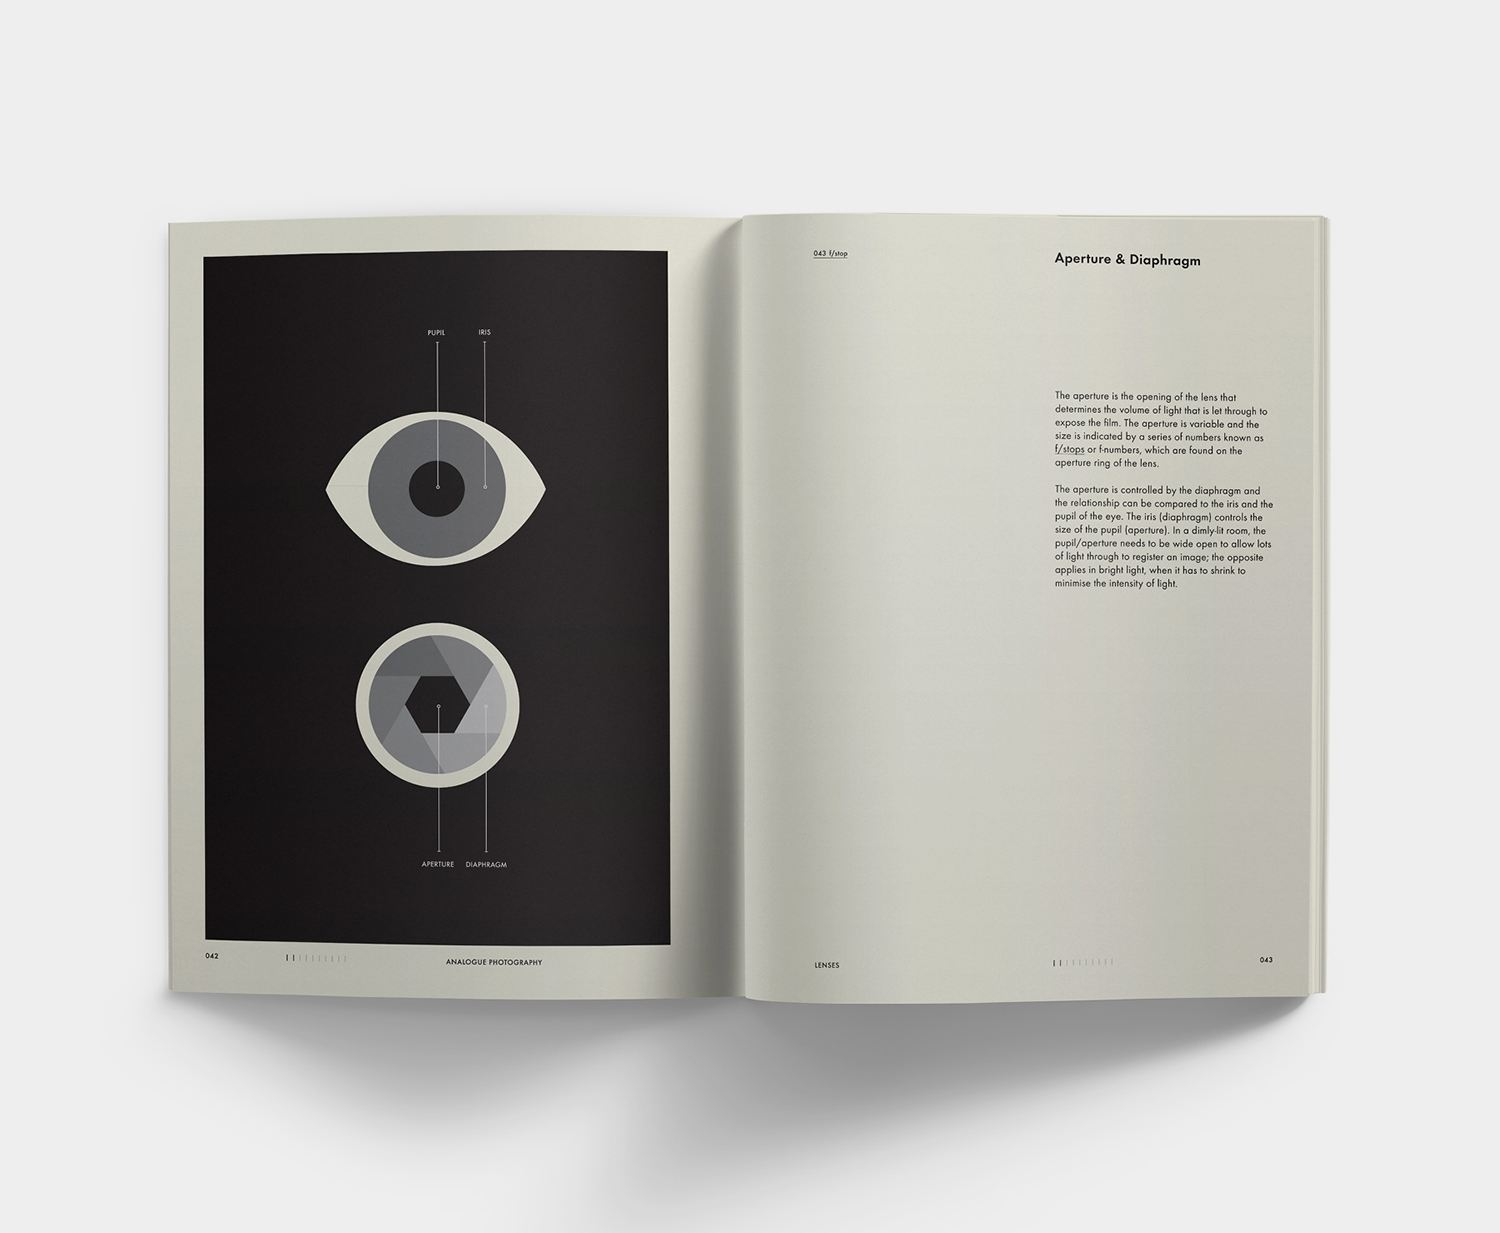 Analogue Photography Reference Book by Andrew Bellamy, eye on page spread